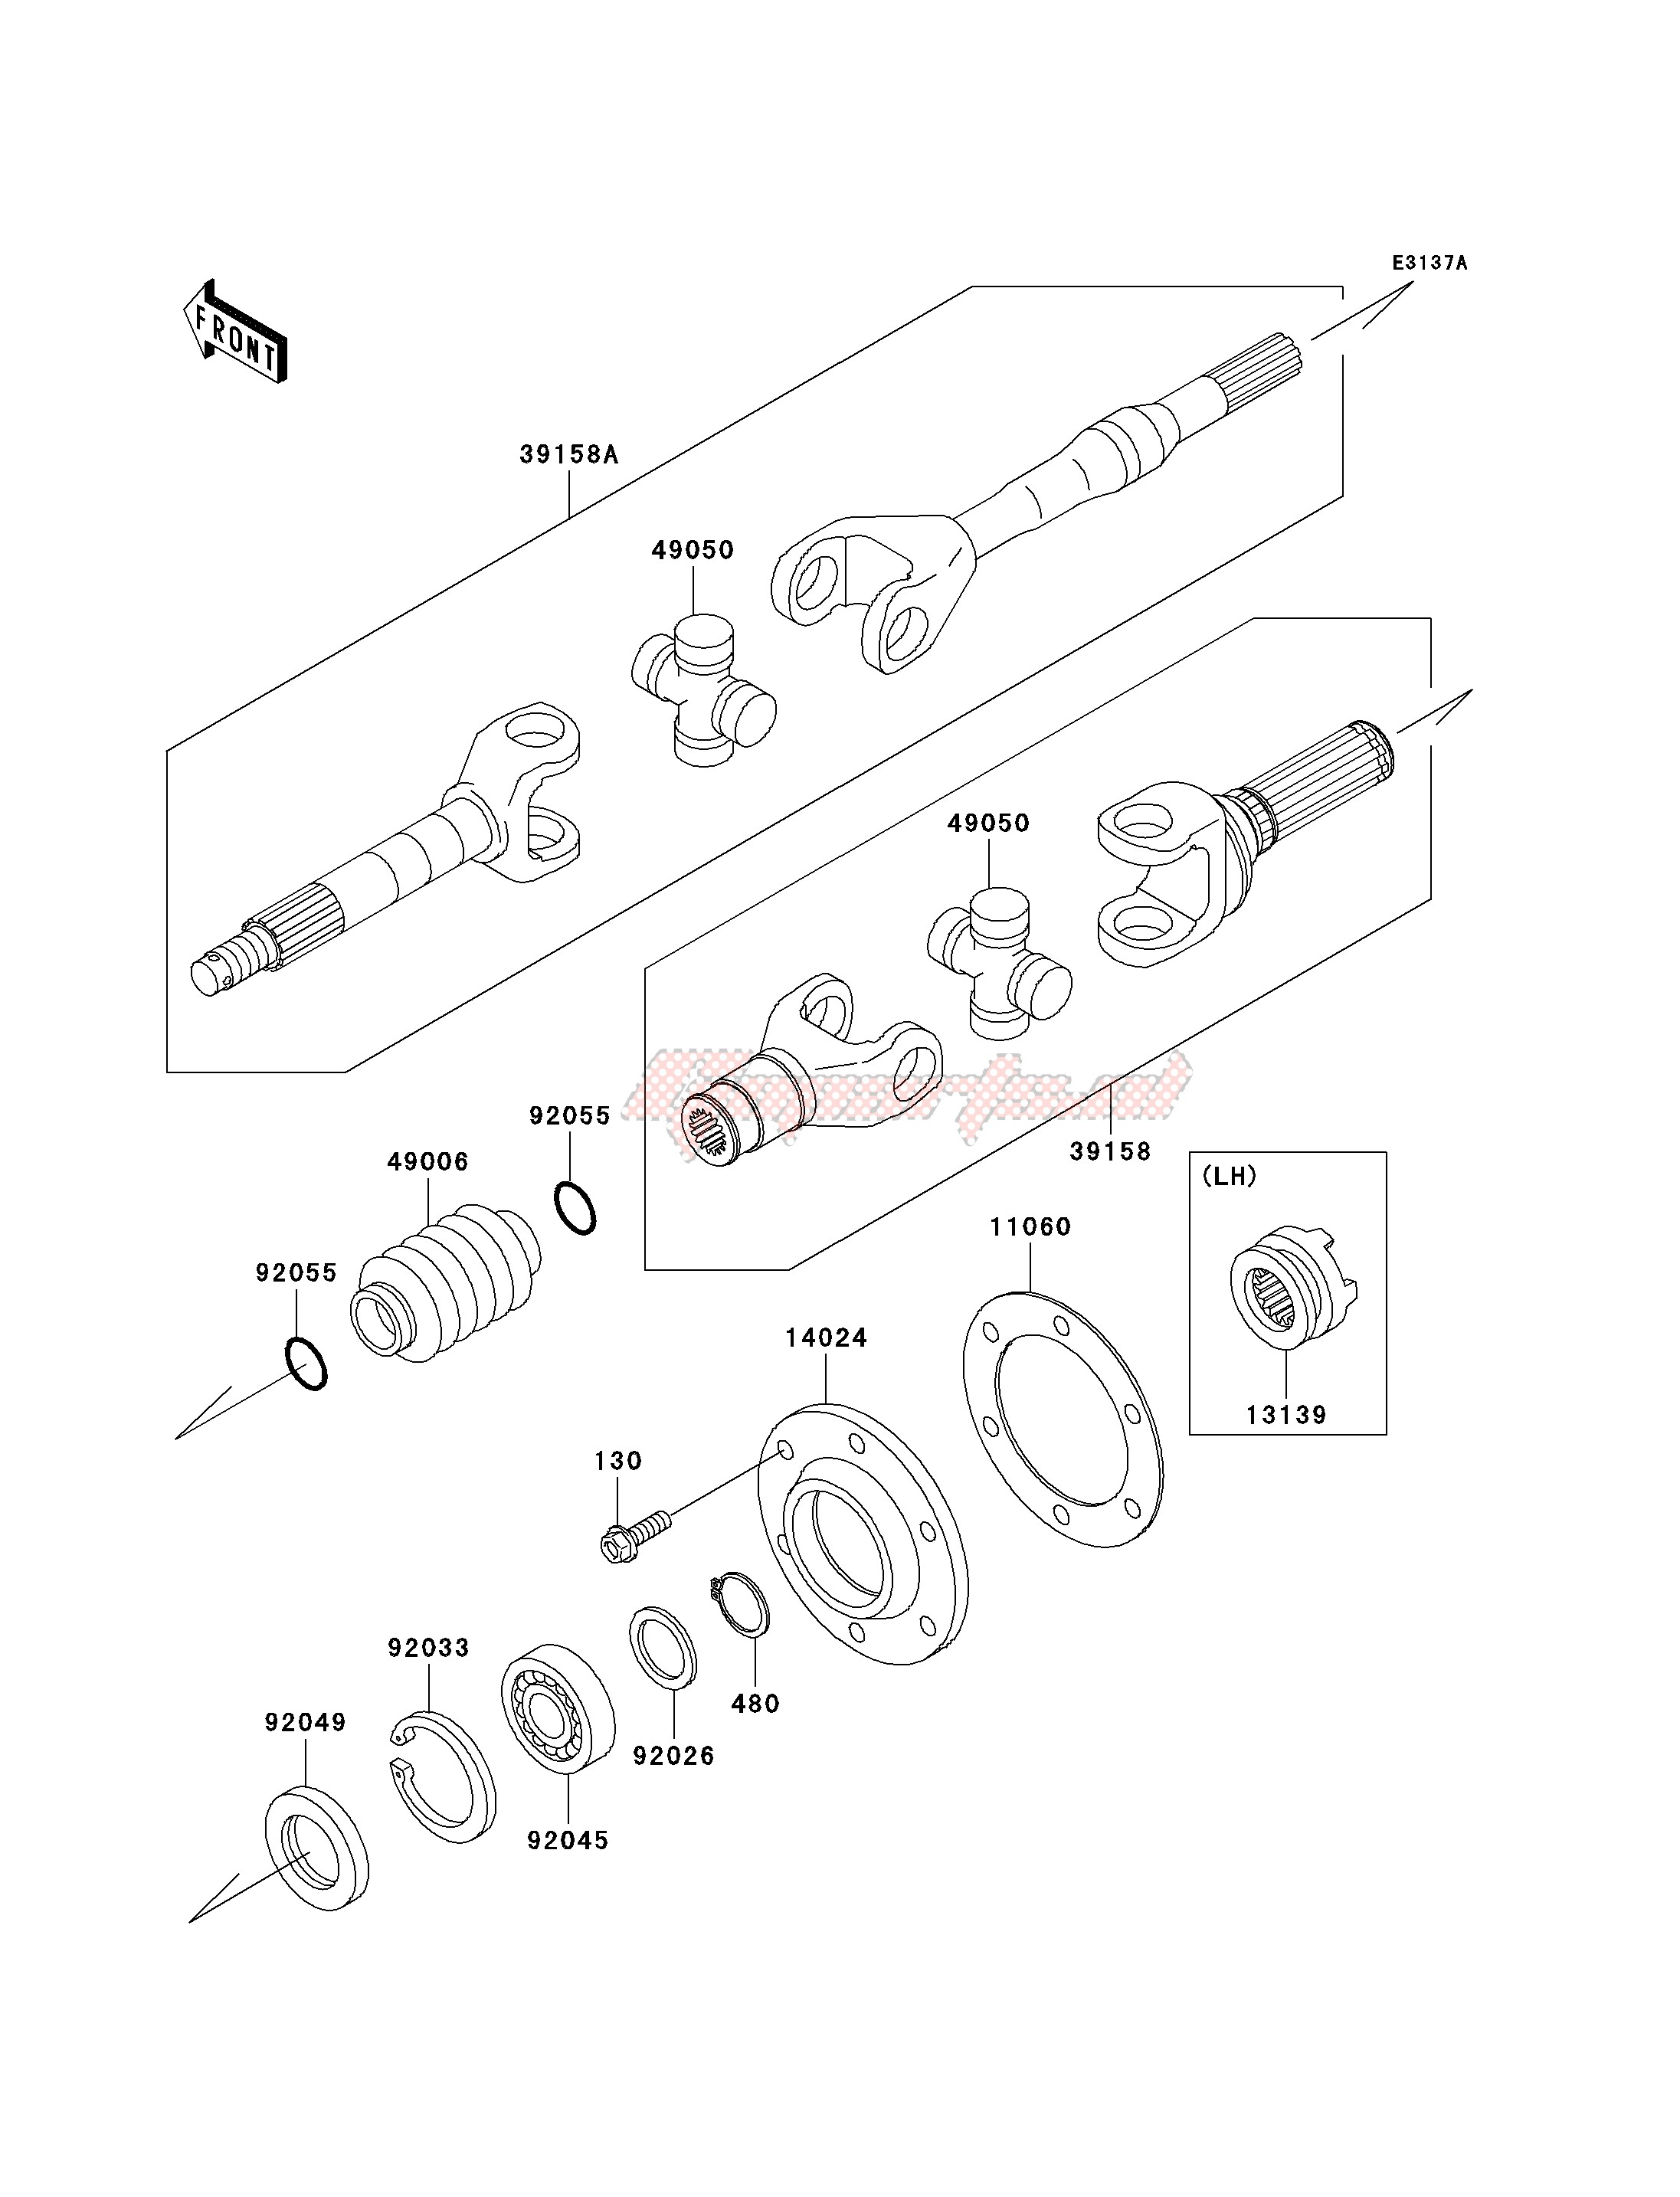 Frame-DRIVE SHAFT-REAR-- KAF620-G4_G5- -